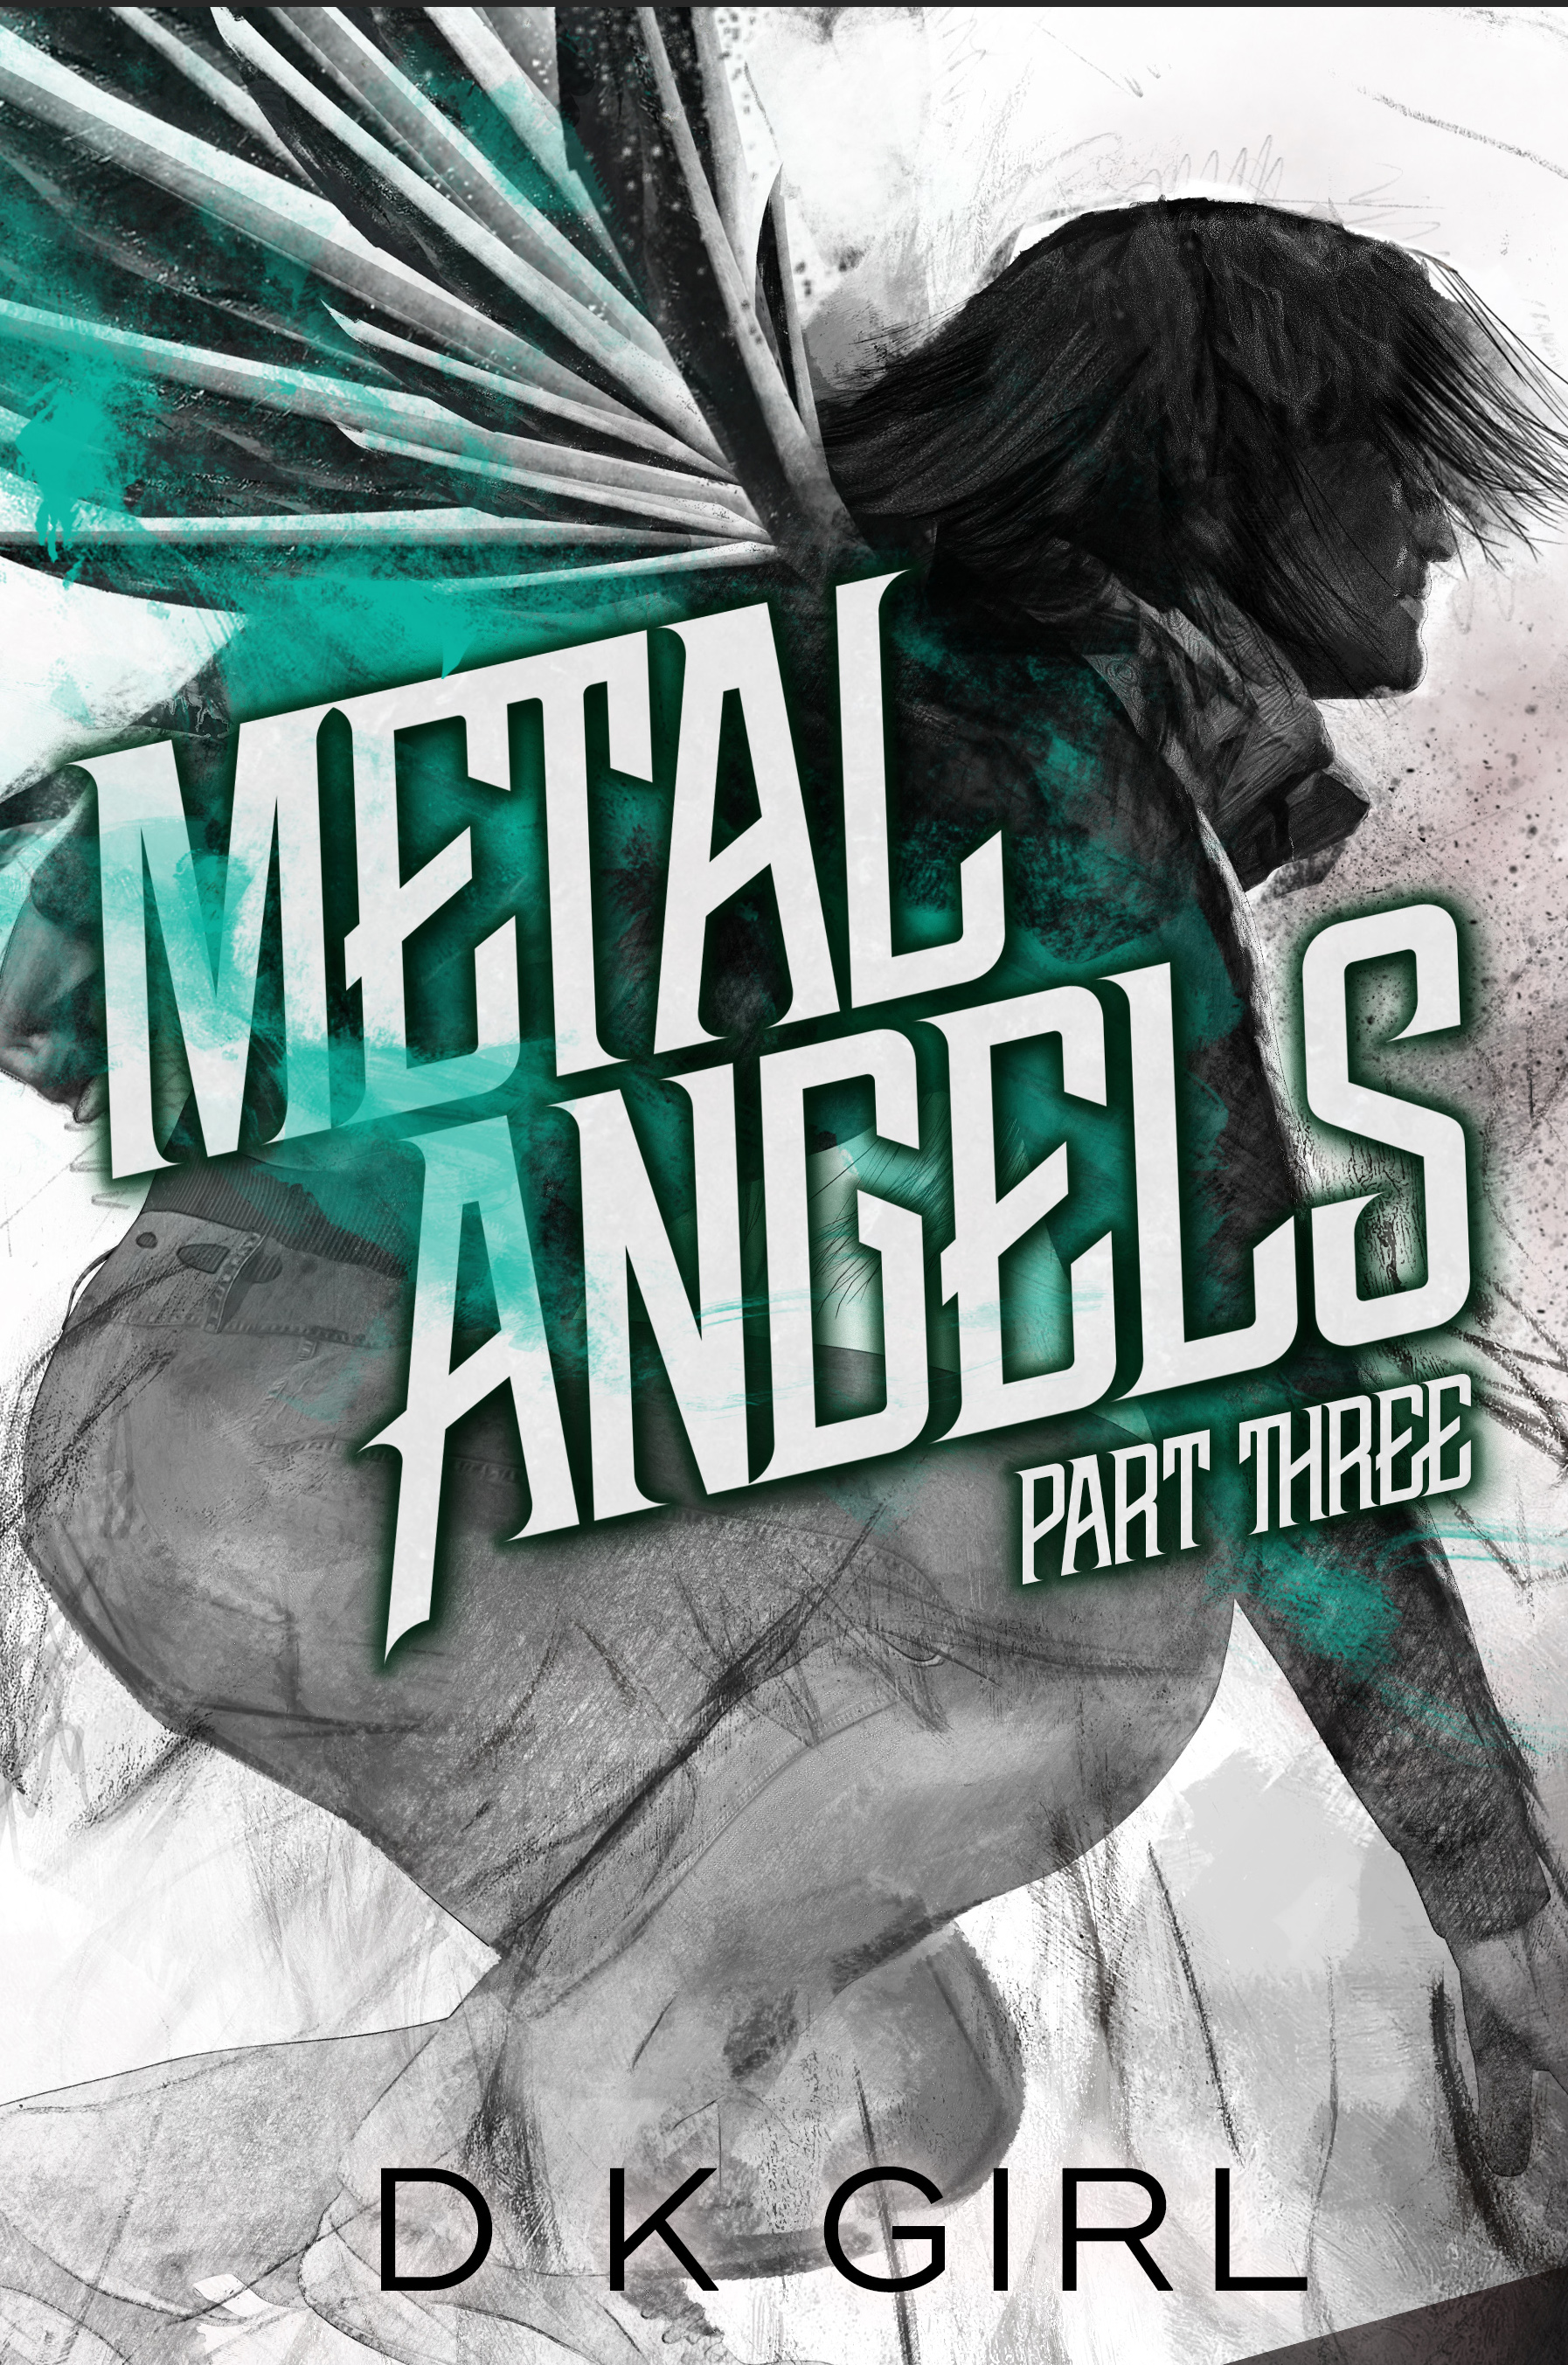 Metal_Angels_Part Three_FINAL